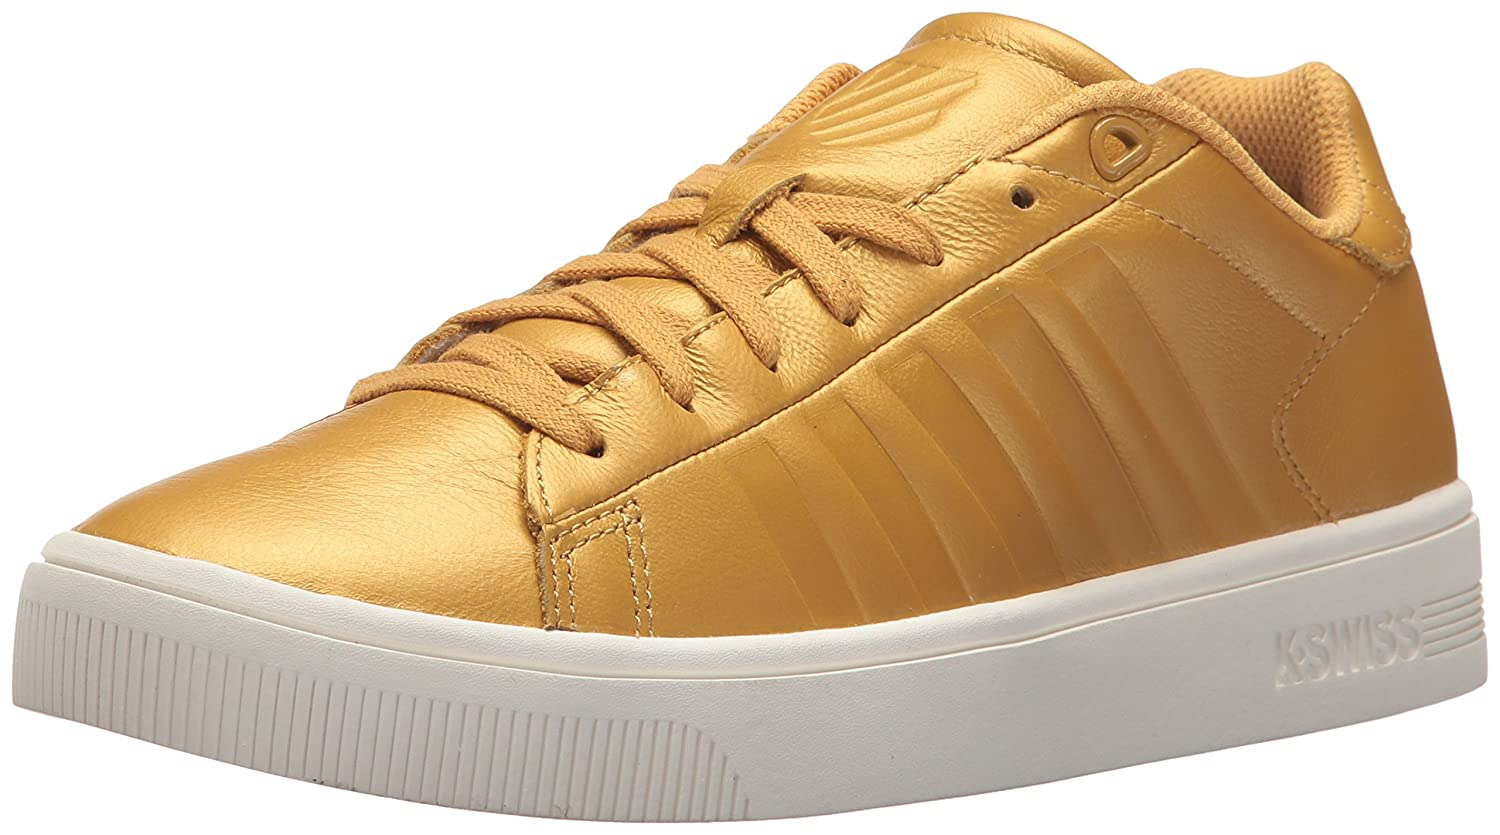 K-Swiss Women's Court Frasco Sneaker B0728CNXXY 5.5 B(M) US|Bright Gold/Marshmallow